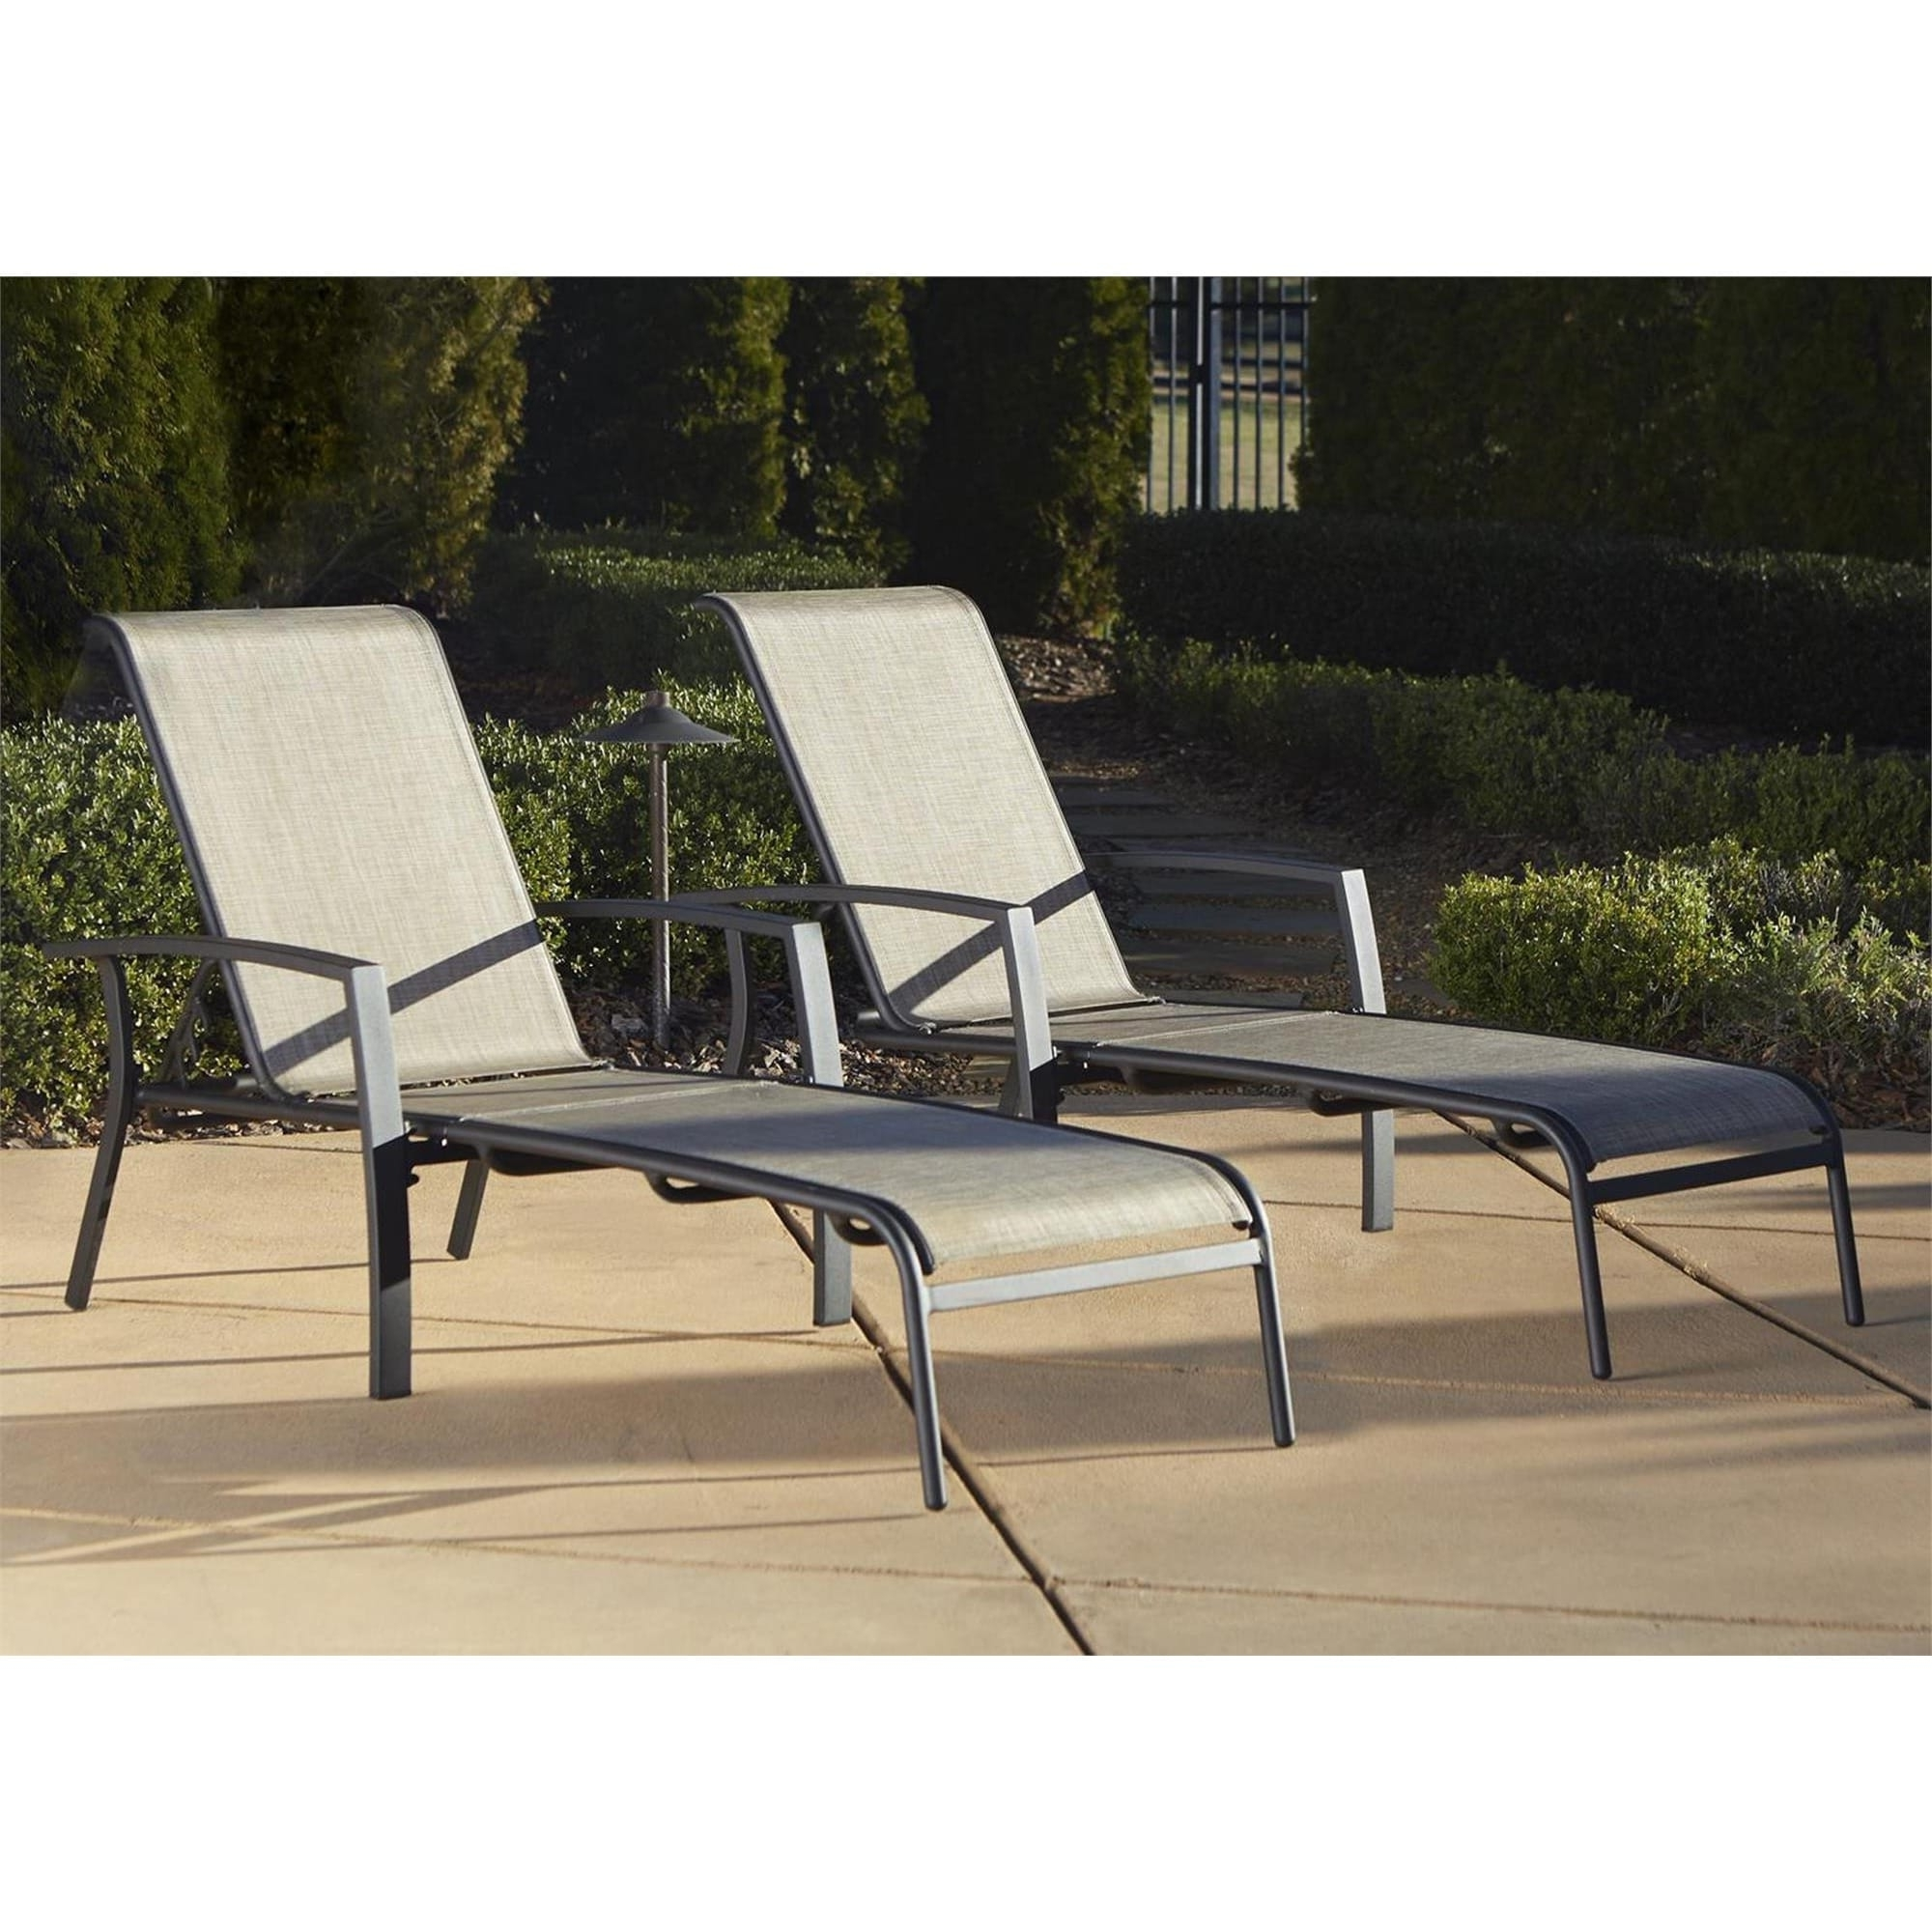 Fashionable Aluminum Chaise Lounge Outdoor Chairs Regarding Cosco Outdoor Aluminum Chaise Lounge Chair (Set Of 2) – Free (View 7 of 15)